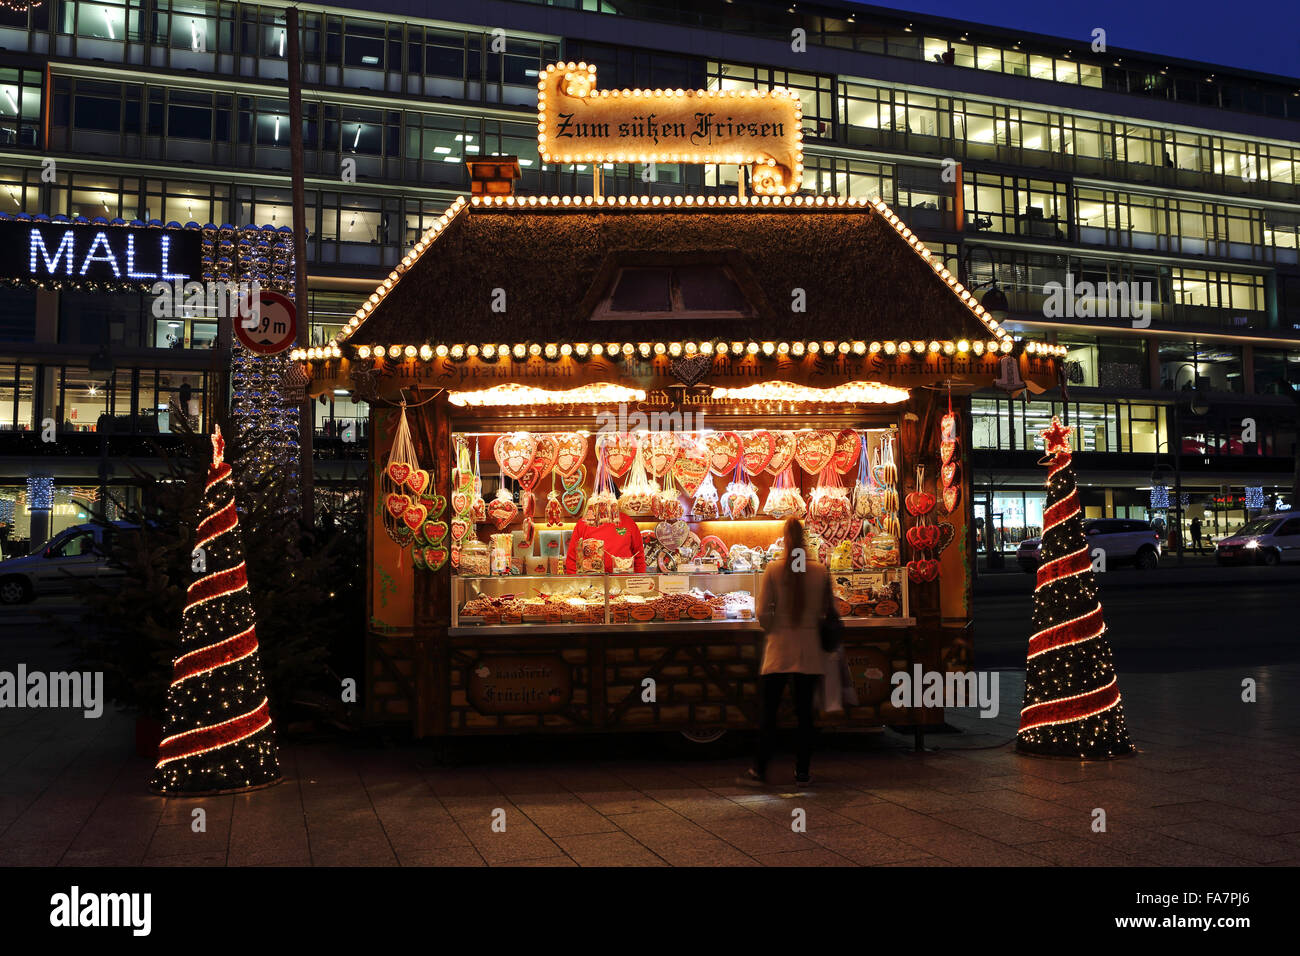 A stall selling gingerbread hearts at the City Weihnachtsmarkt am Gedachtniskirche Christmas market on Ku'damm - Stock Image